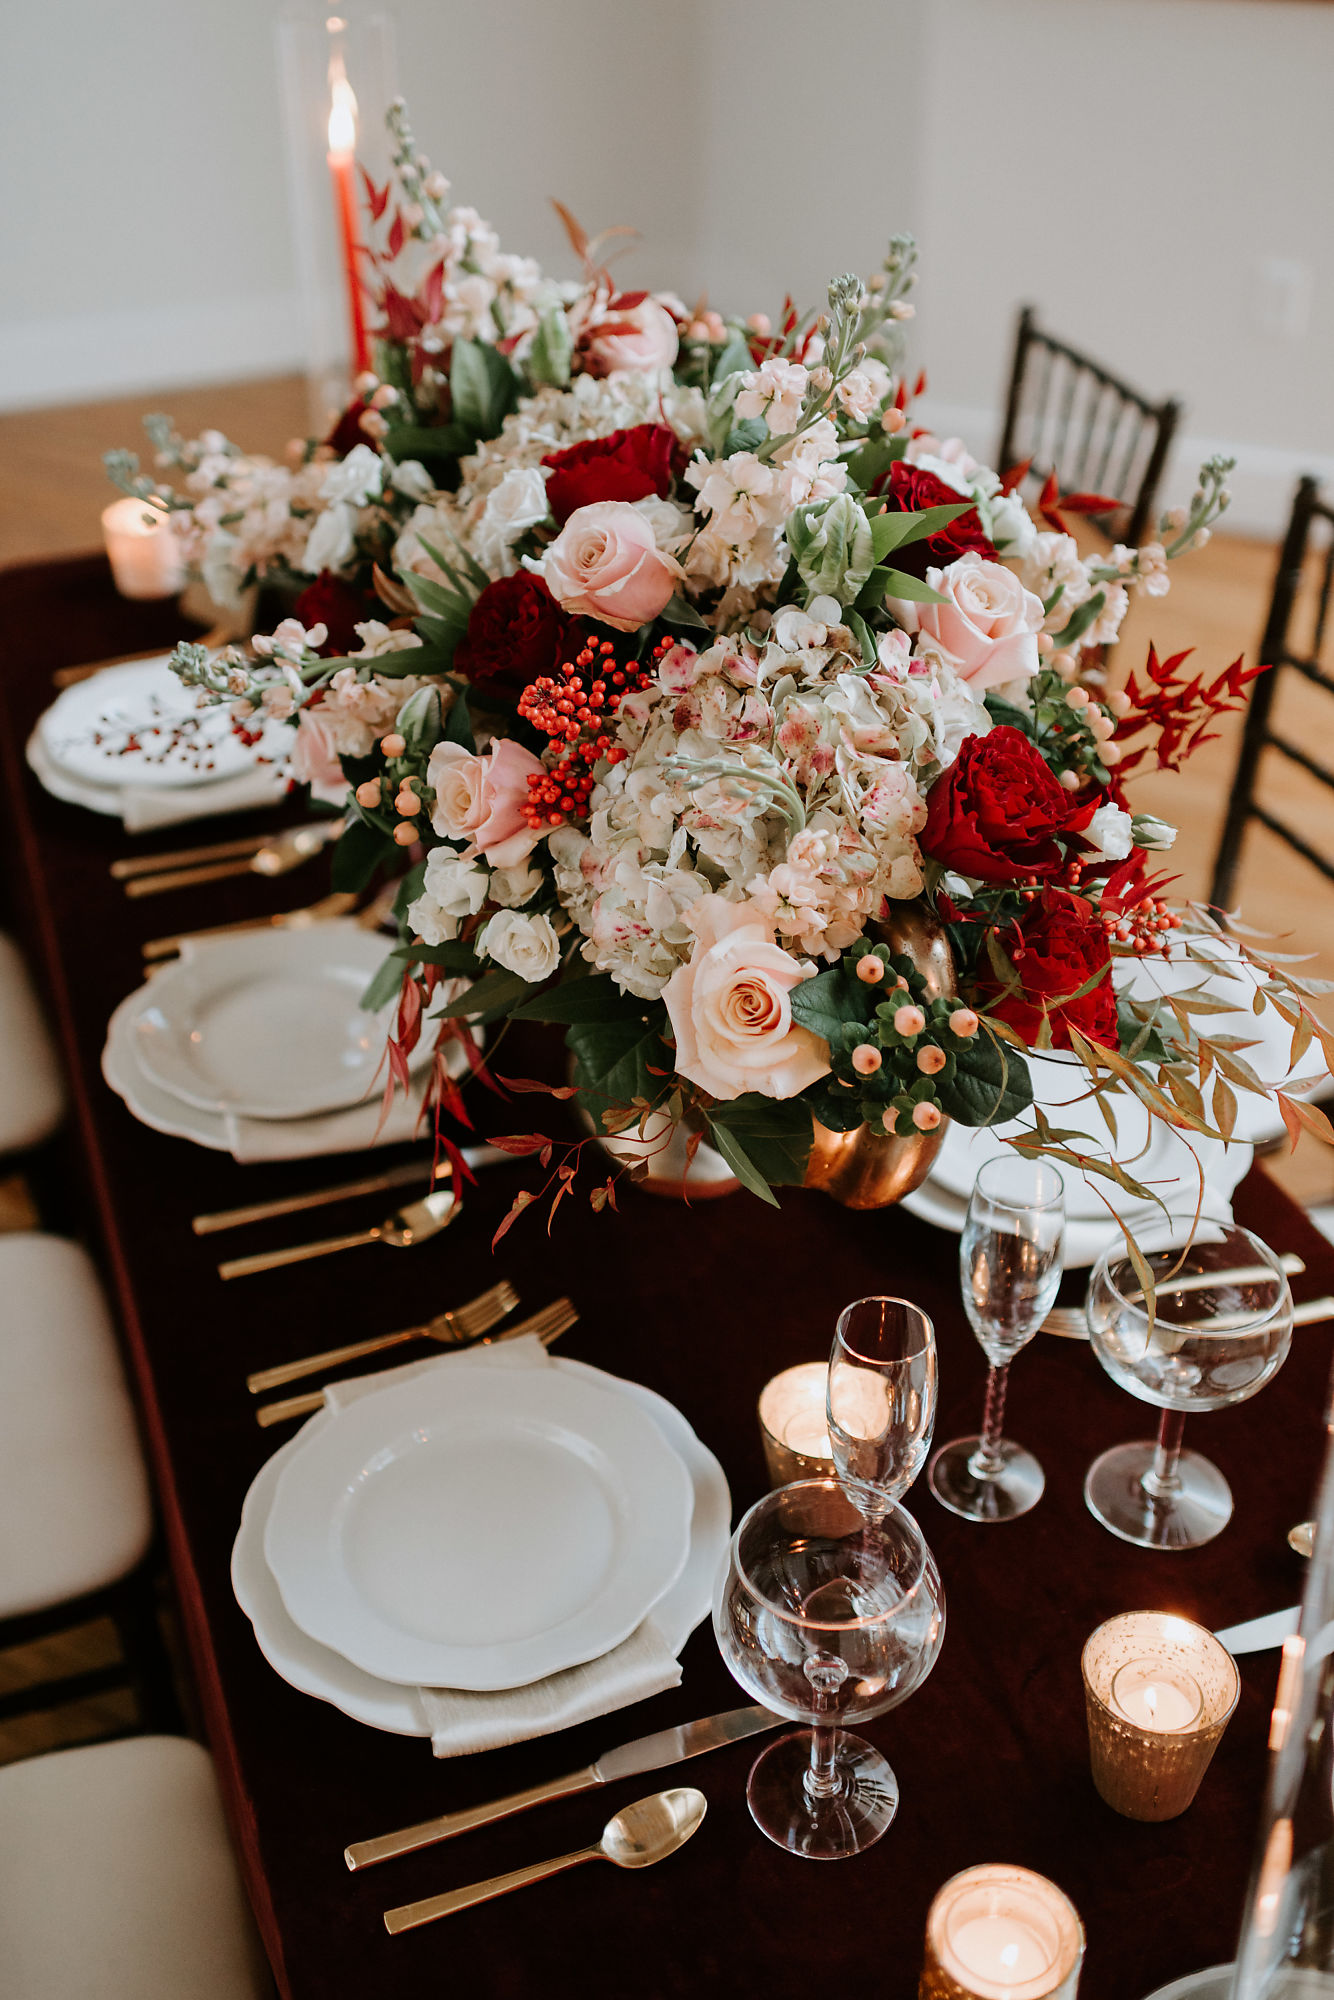 Louisville blogger, What Nicole Wore, got fake married and shows you The Pointe, a dog friendly, Kentucky event venue in a dreamy wedding styled shoot. // louisville wedding the pointe, louisville wedding reception, louisville wedding photographers, louisville wedding locations, wedding floral centerpieces, burgundy wedding flowers, burgundy floral arrangements